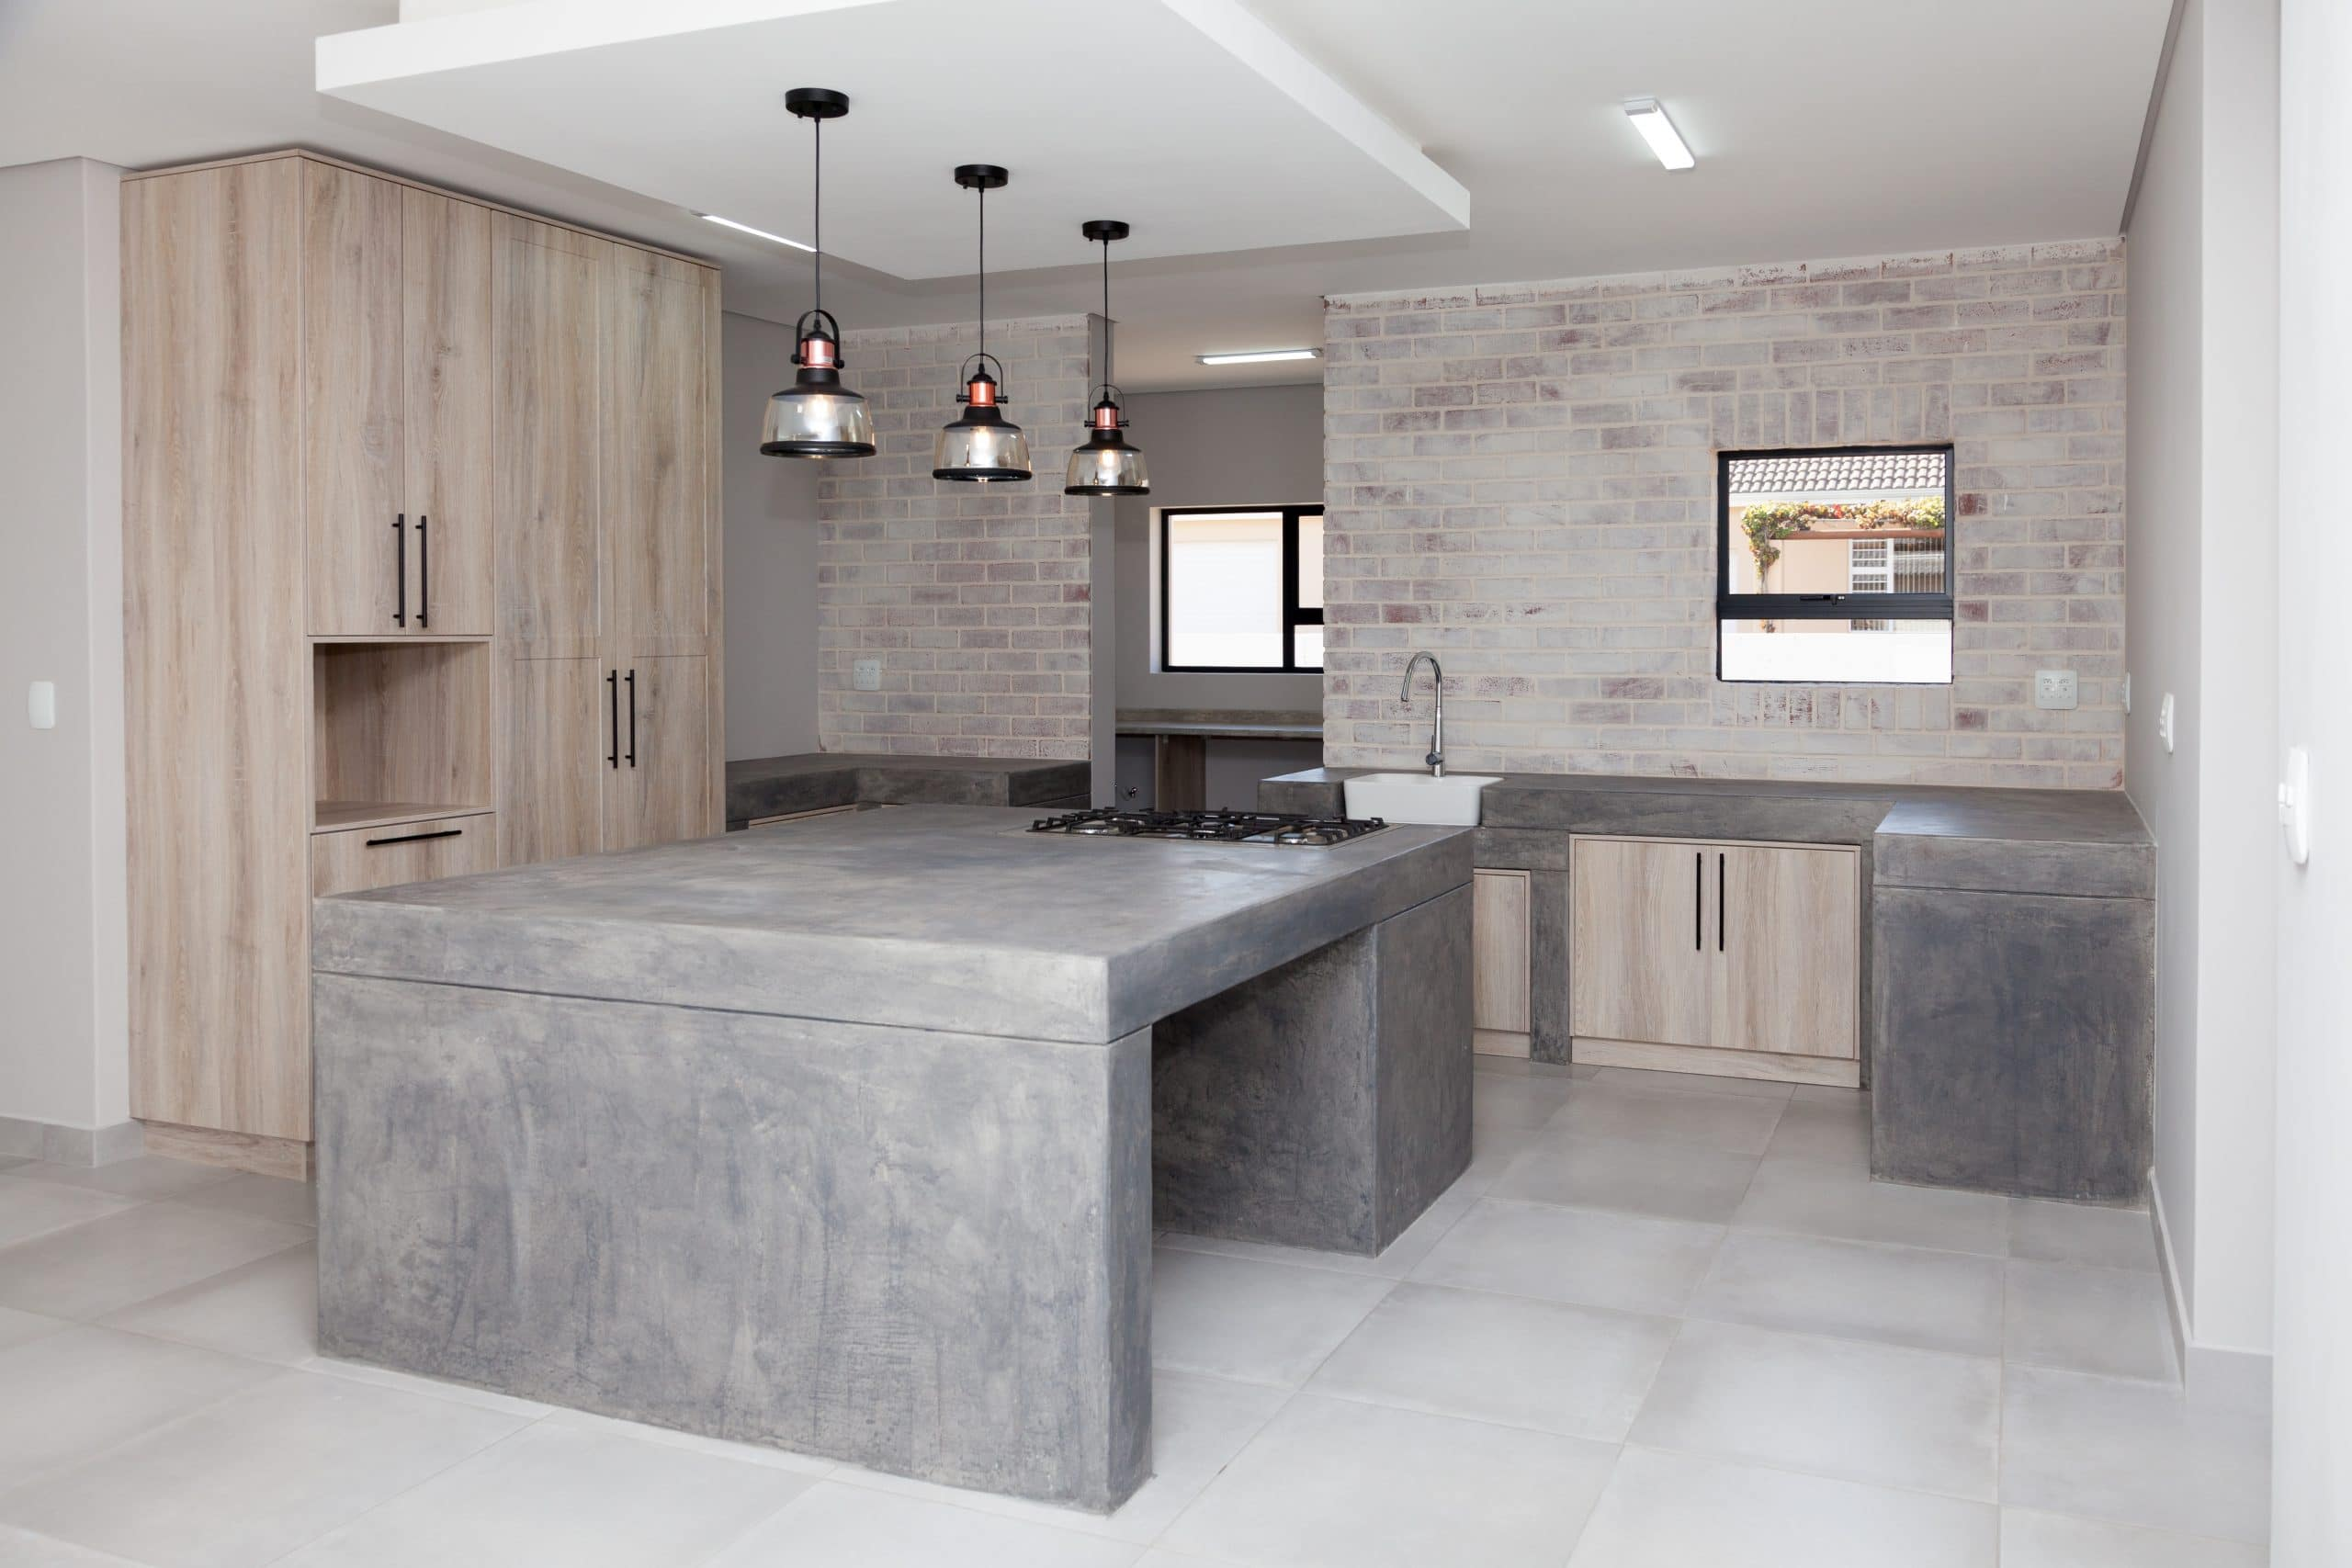 white washed brick kitchen with wood en screed finish rustic kitchen